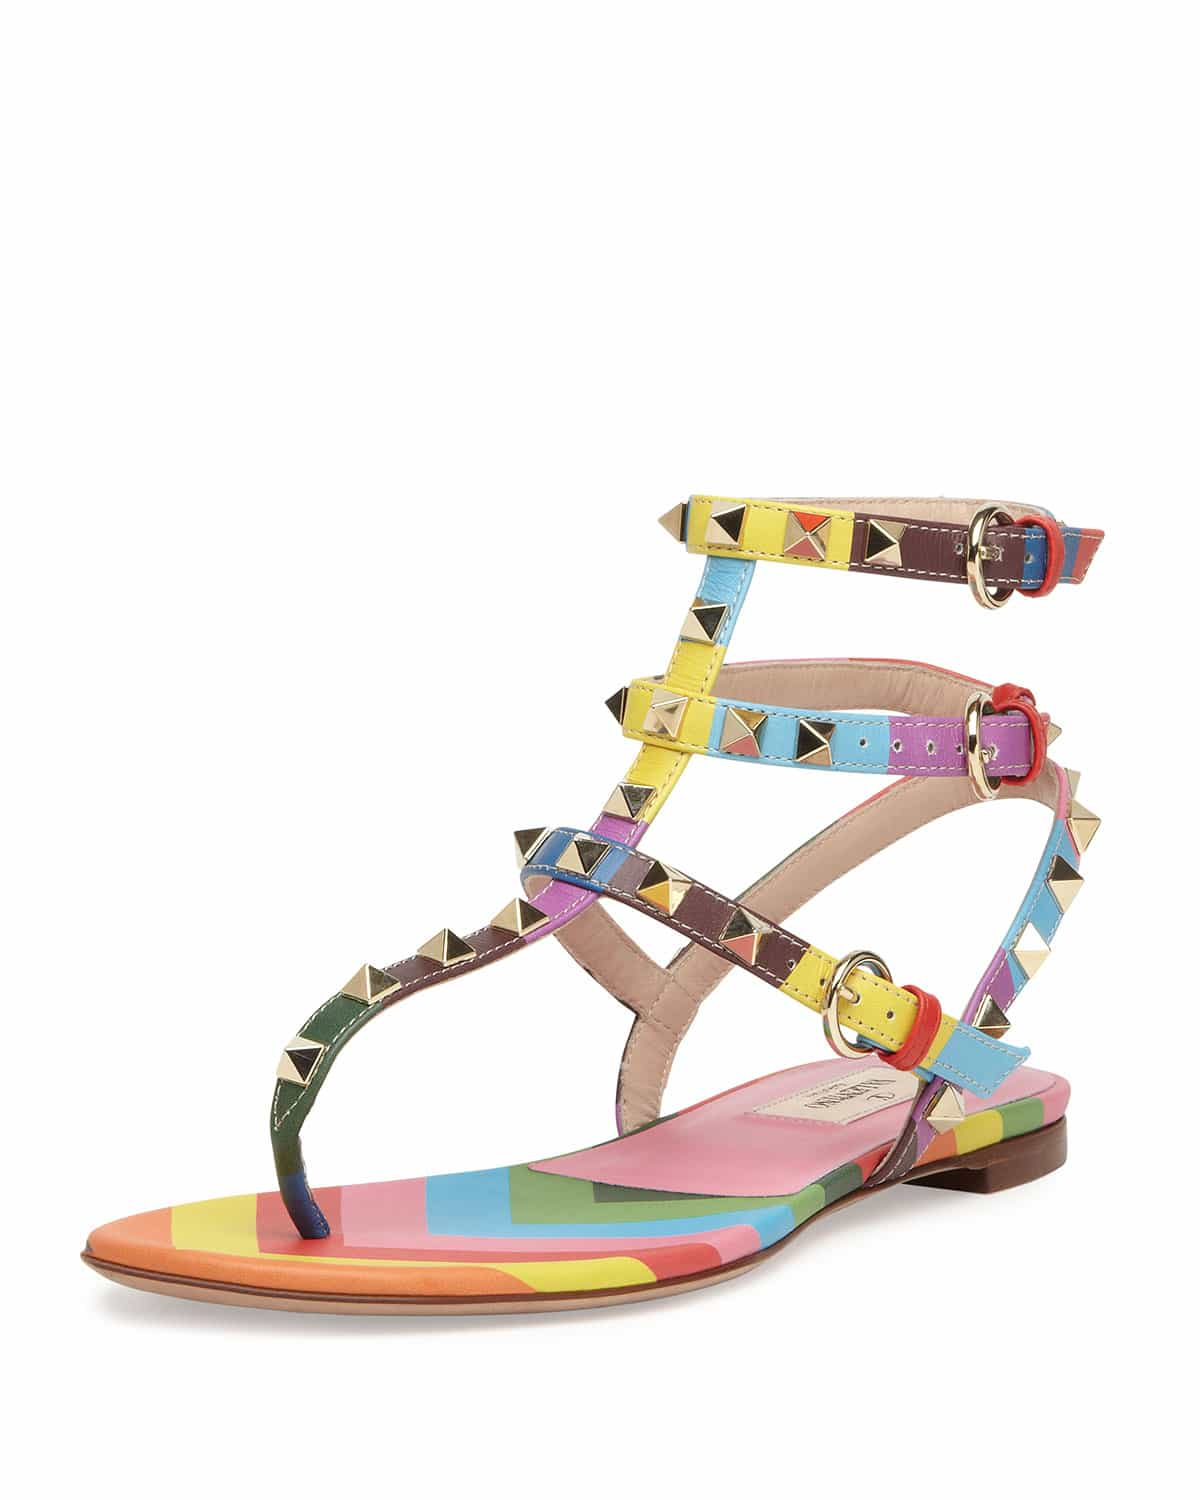 Valentino sandals shoes price - Valentino Multicolor Rockstud 1973 Thong Sandal Cruise 2015